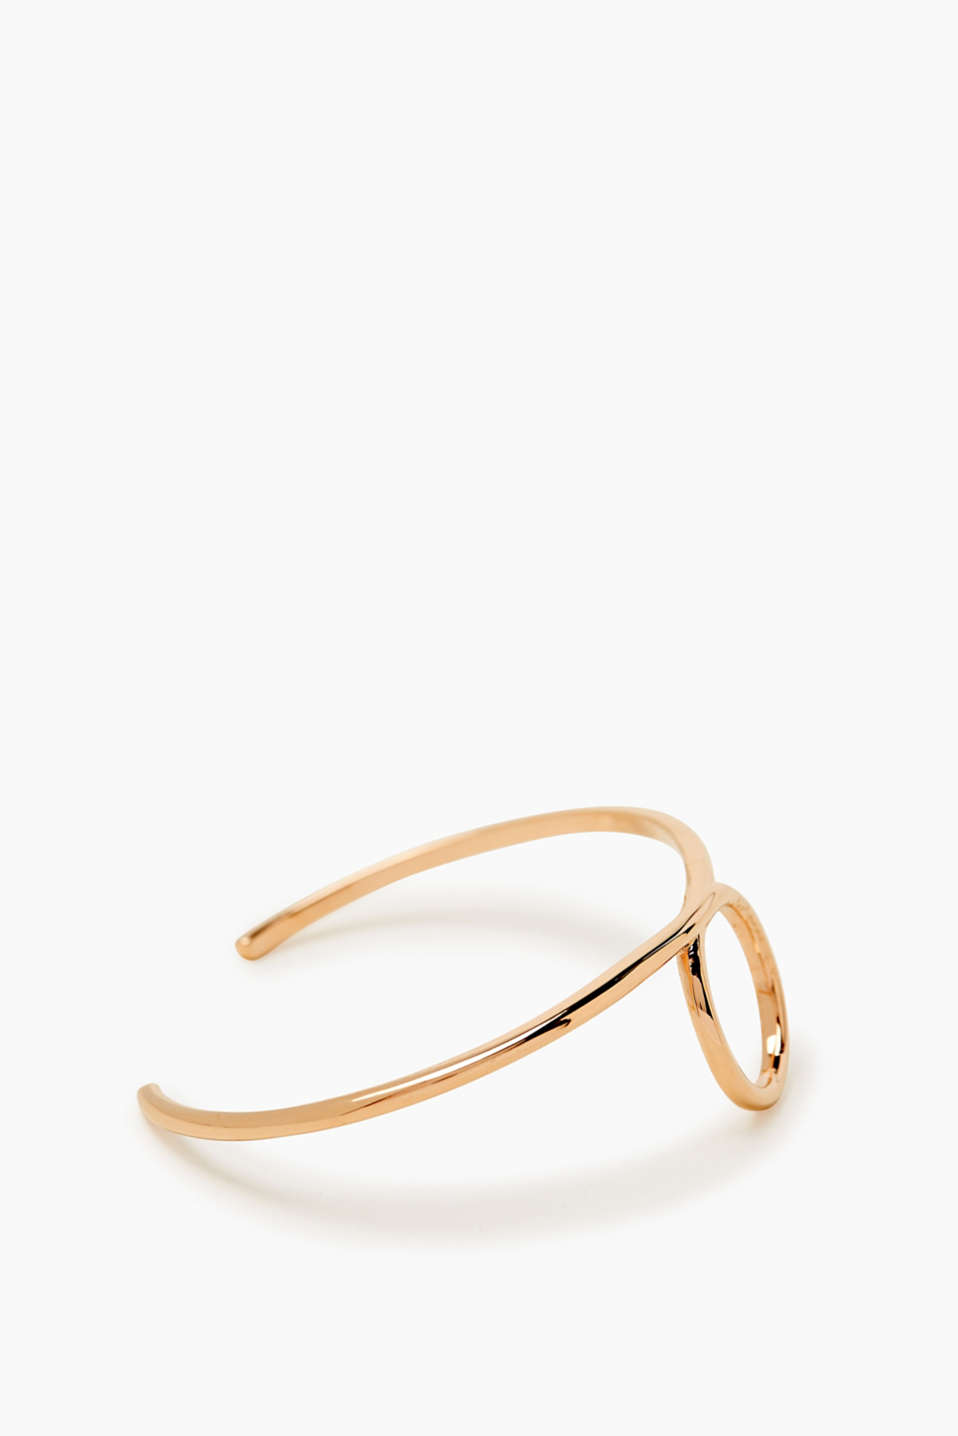 Open bangle in a rose gold tone